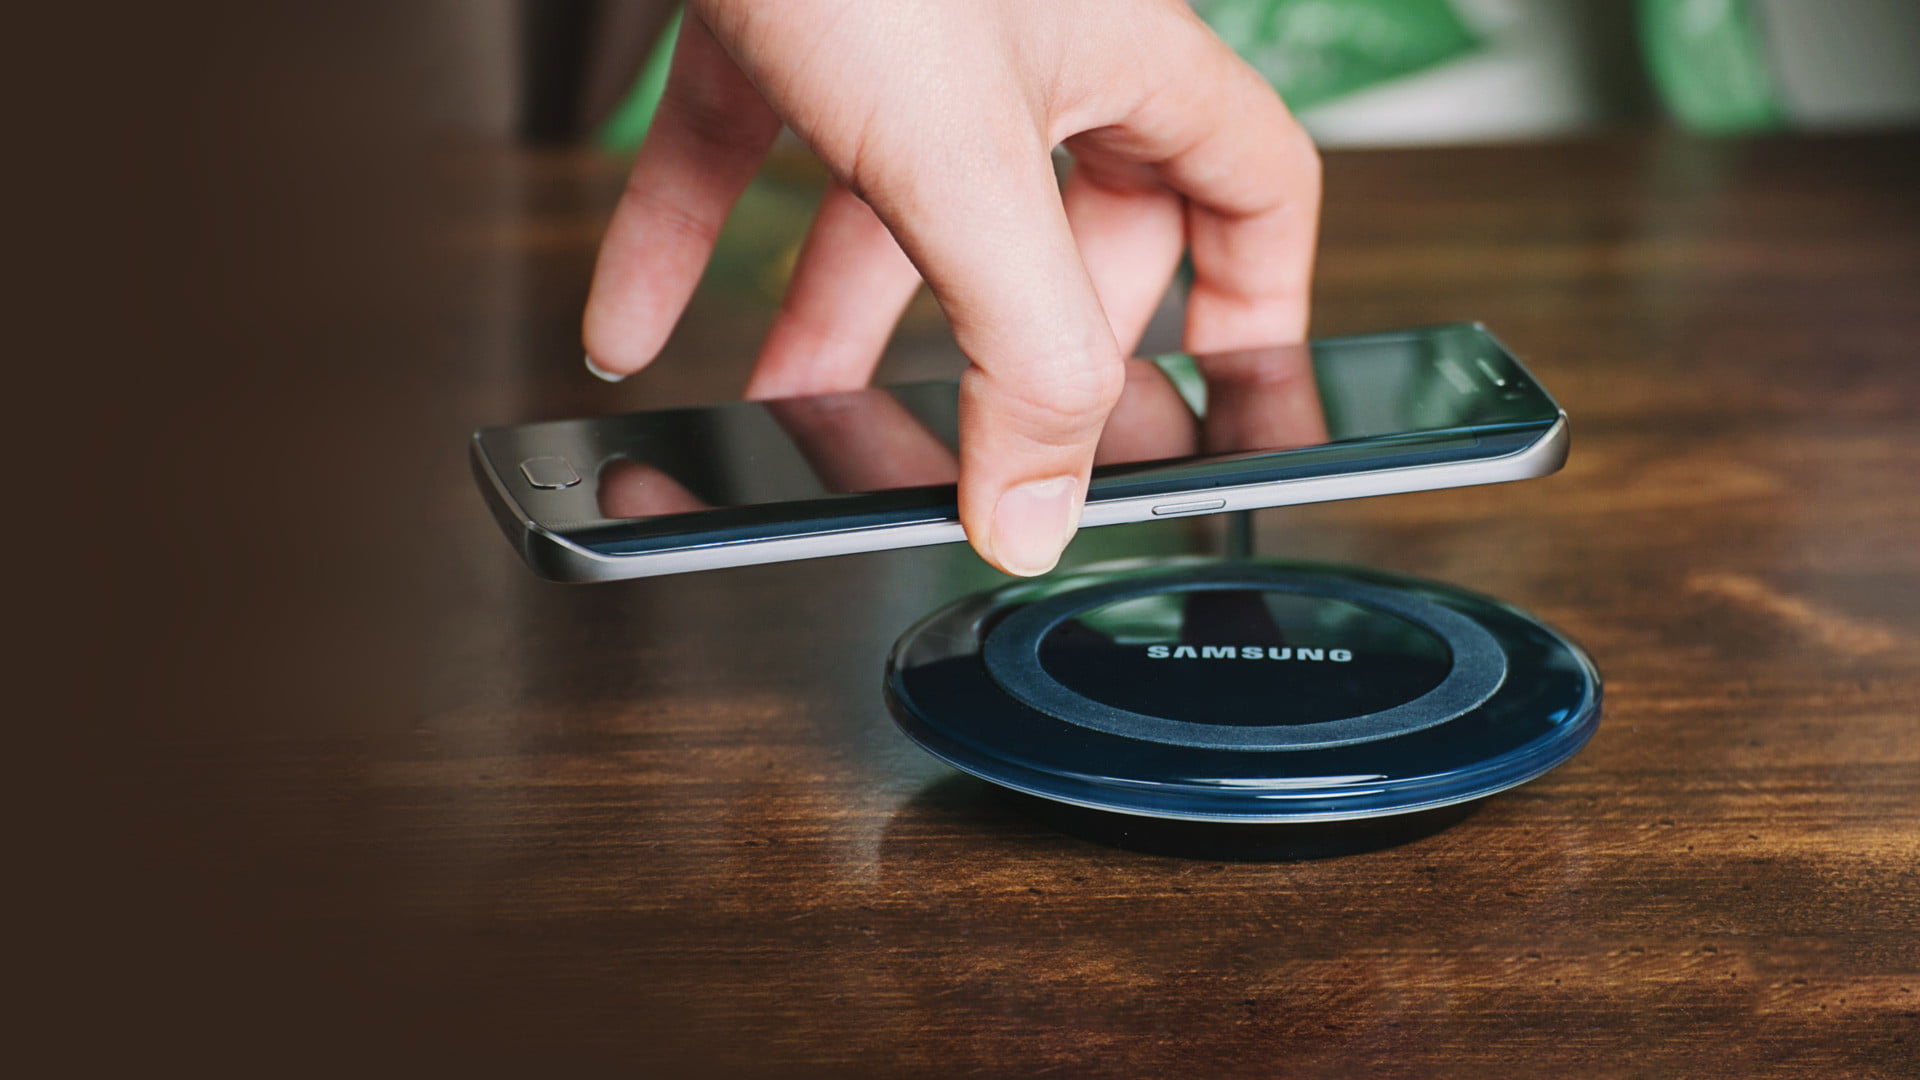 Does wireless charging degrade your battery faster? We asked an